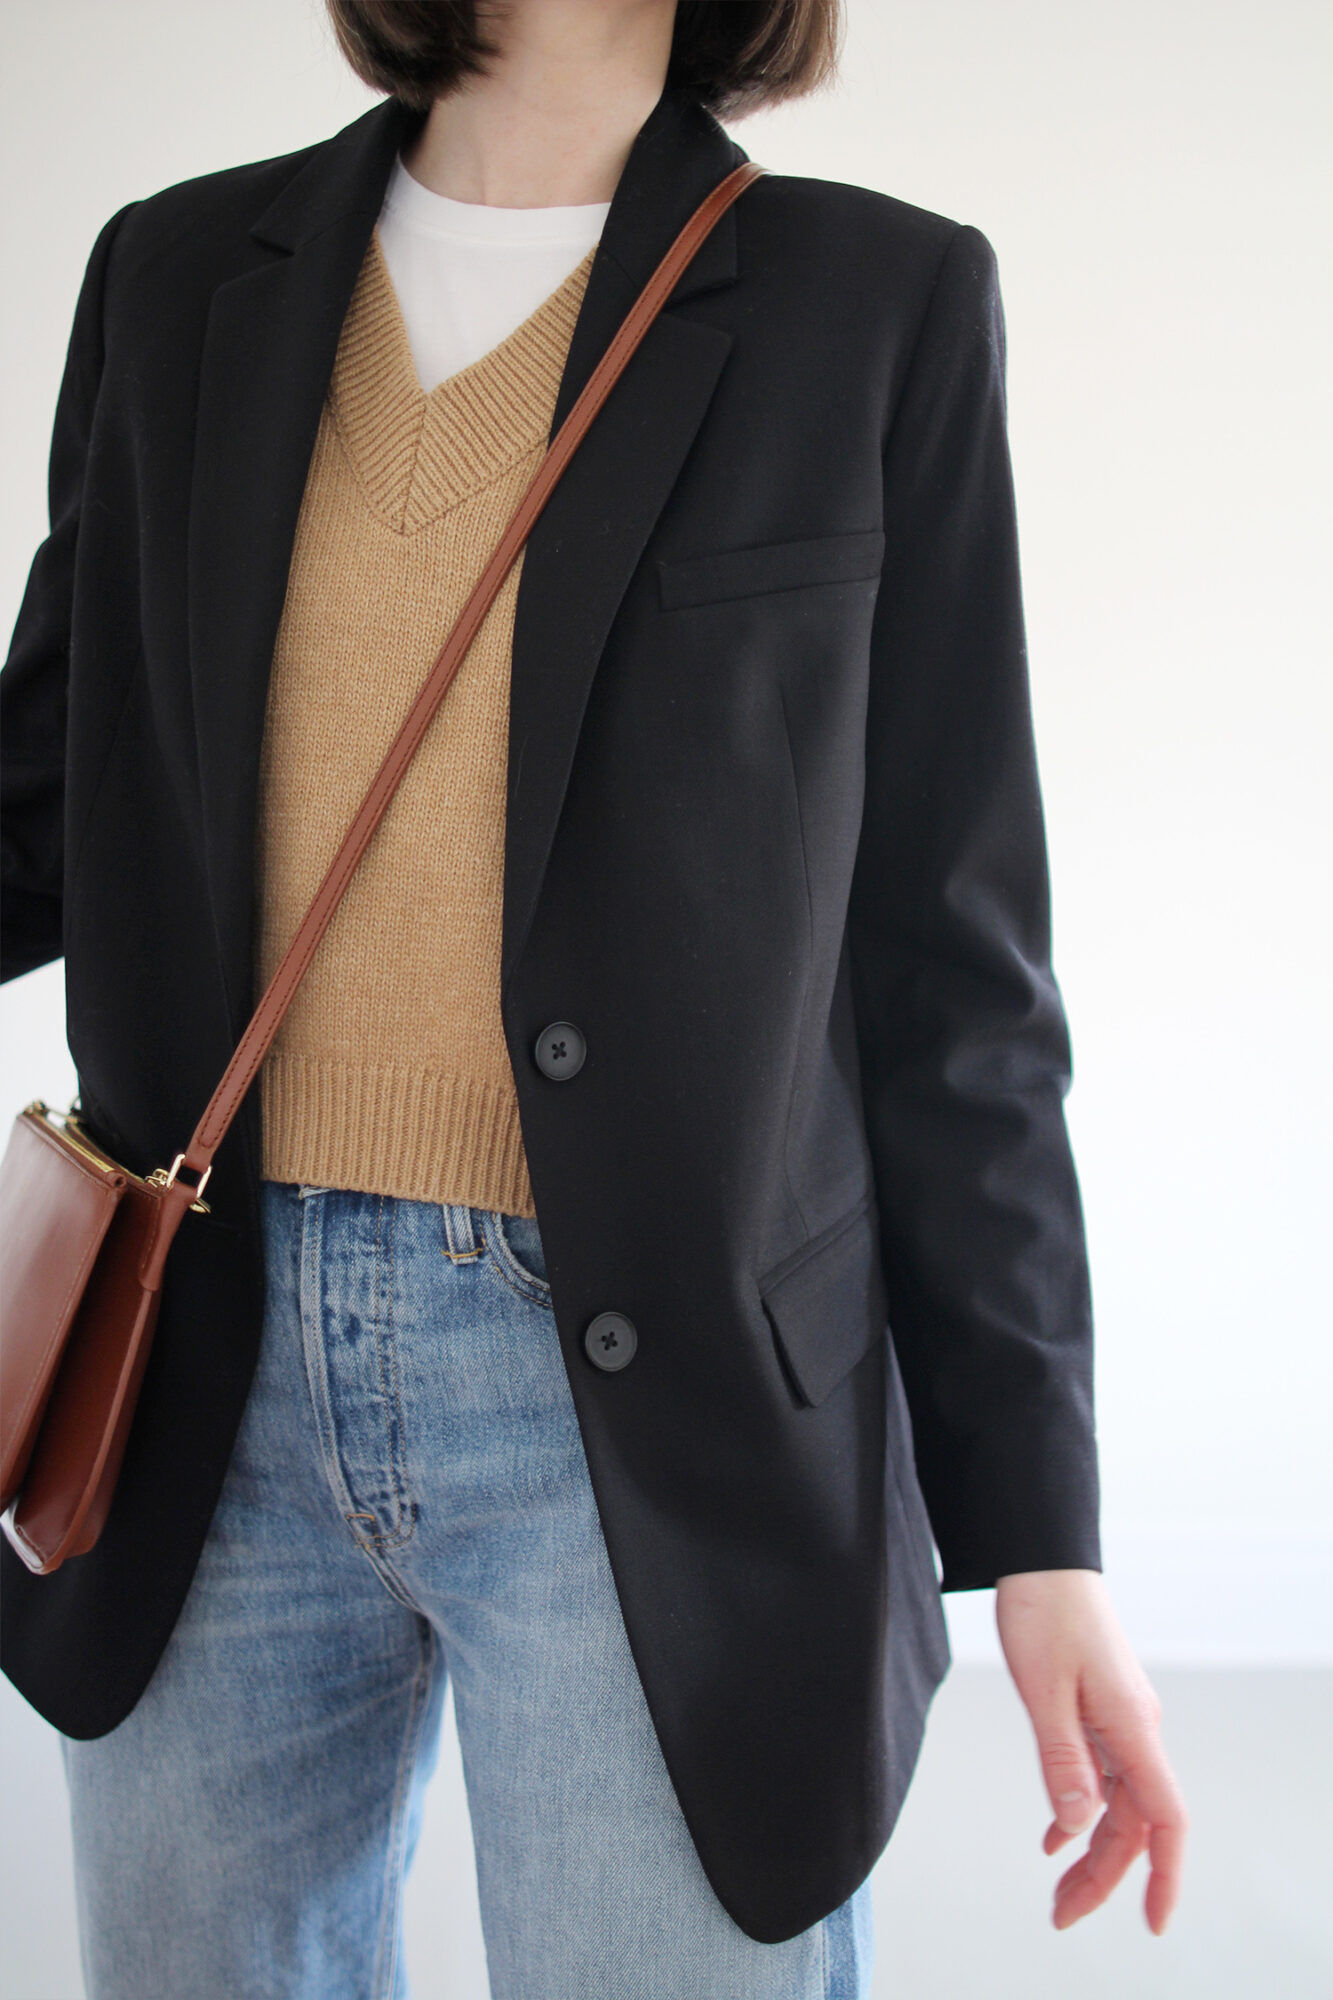 Style Bee - Sweater Vest and Blazer